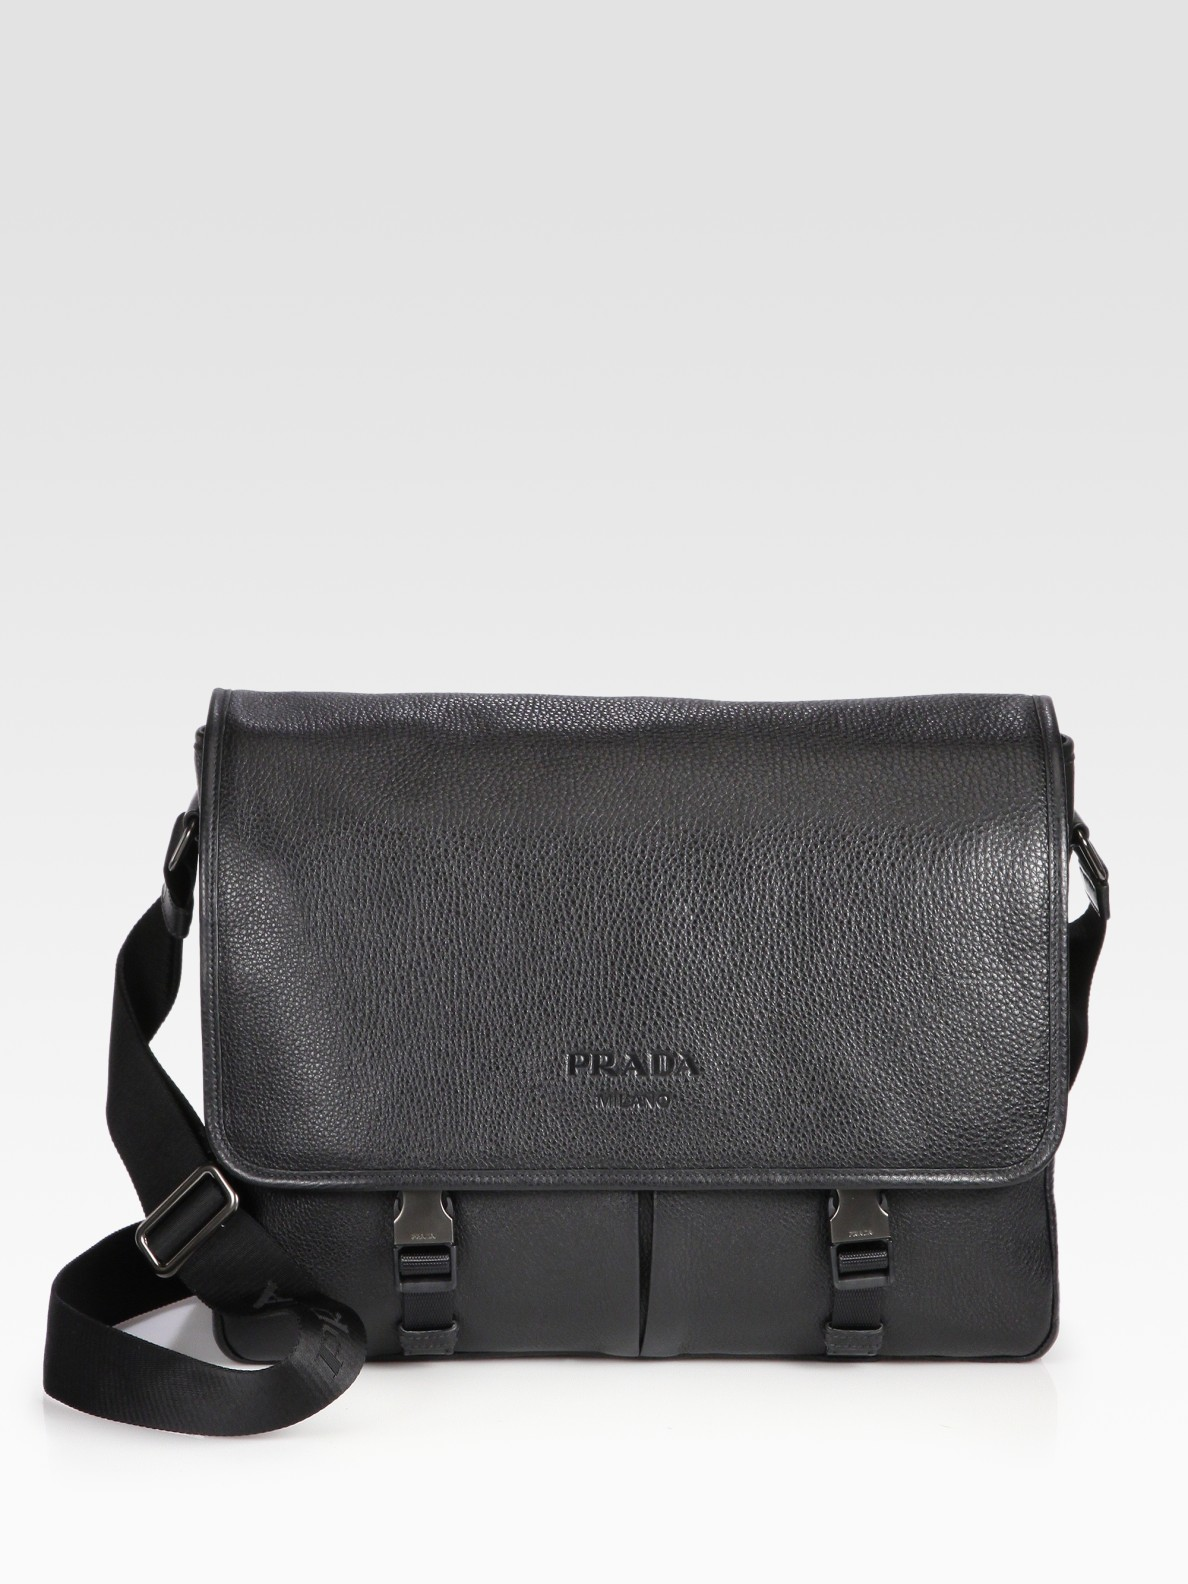 Lyst Prada Pebbled Leather Messenger Bag In Black For Men